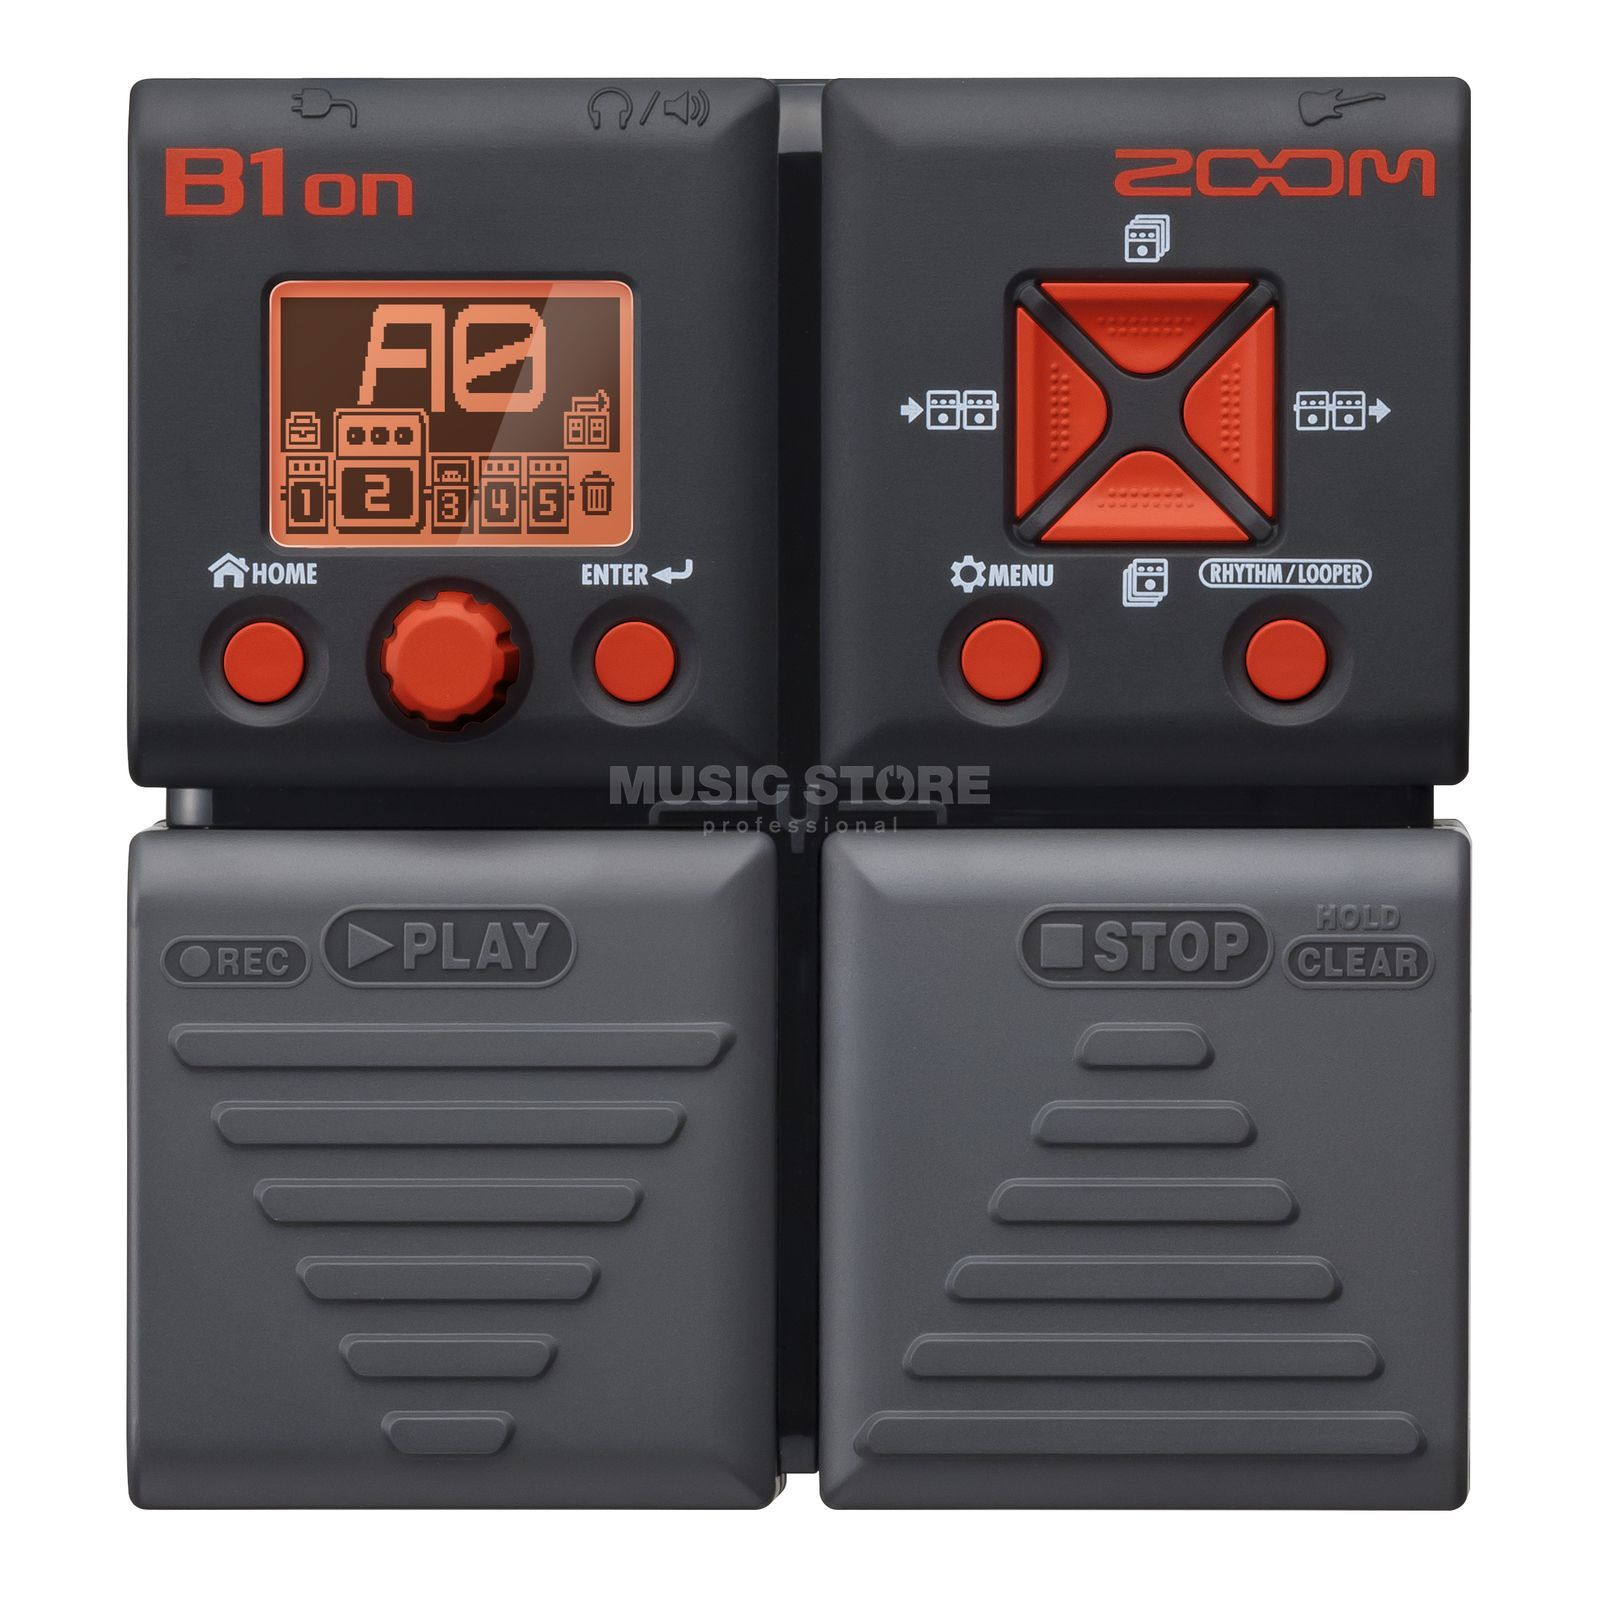 Zoom B1on  Product Image